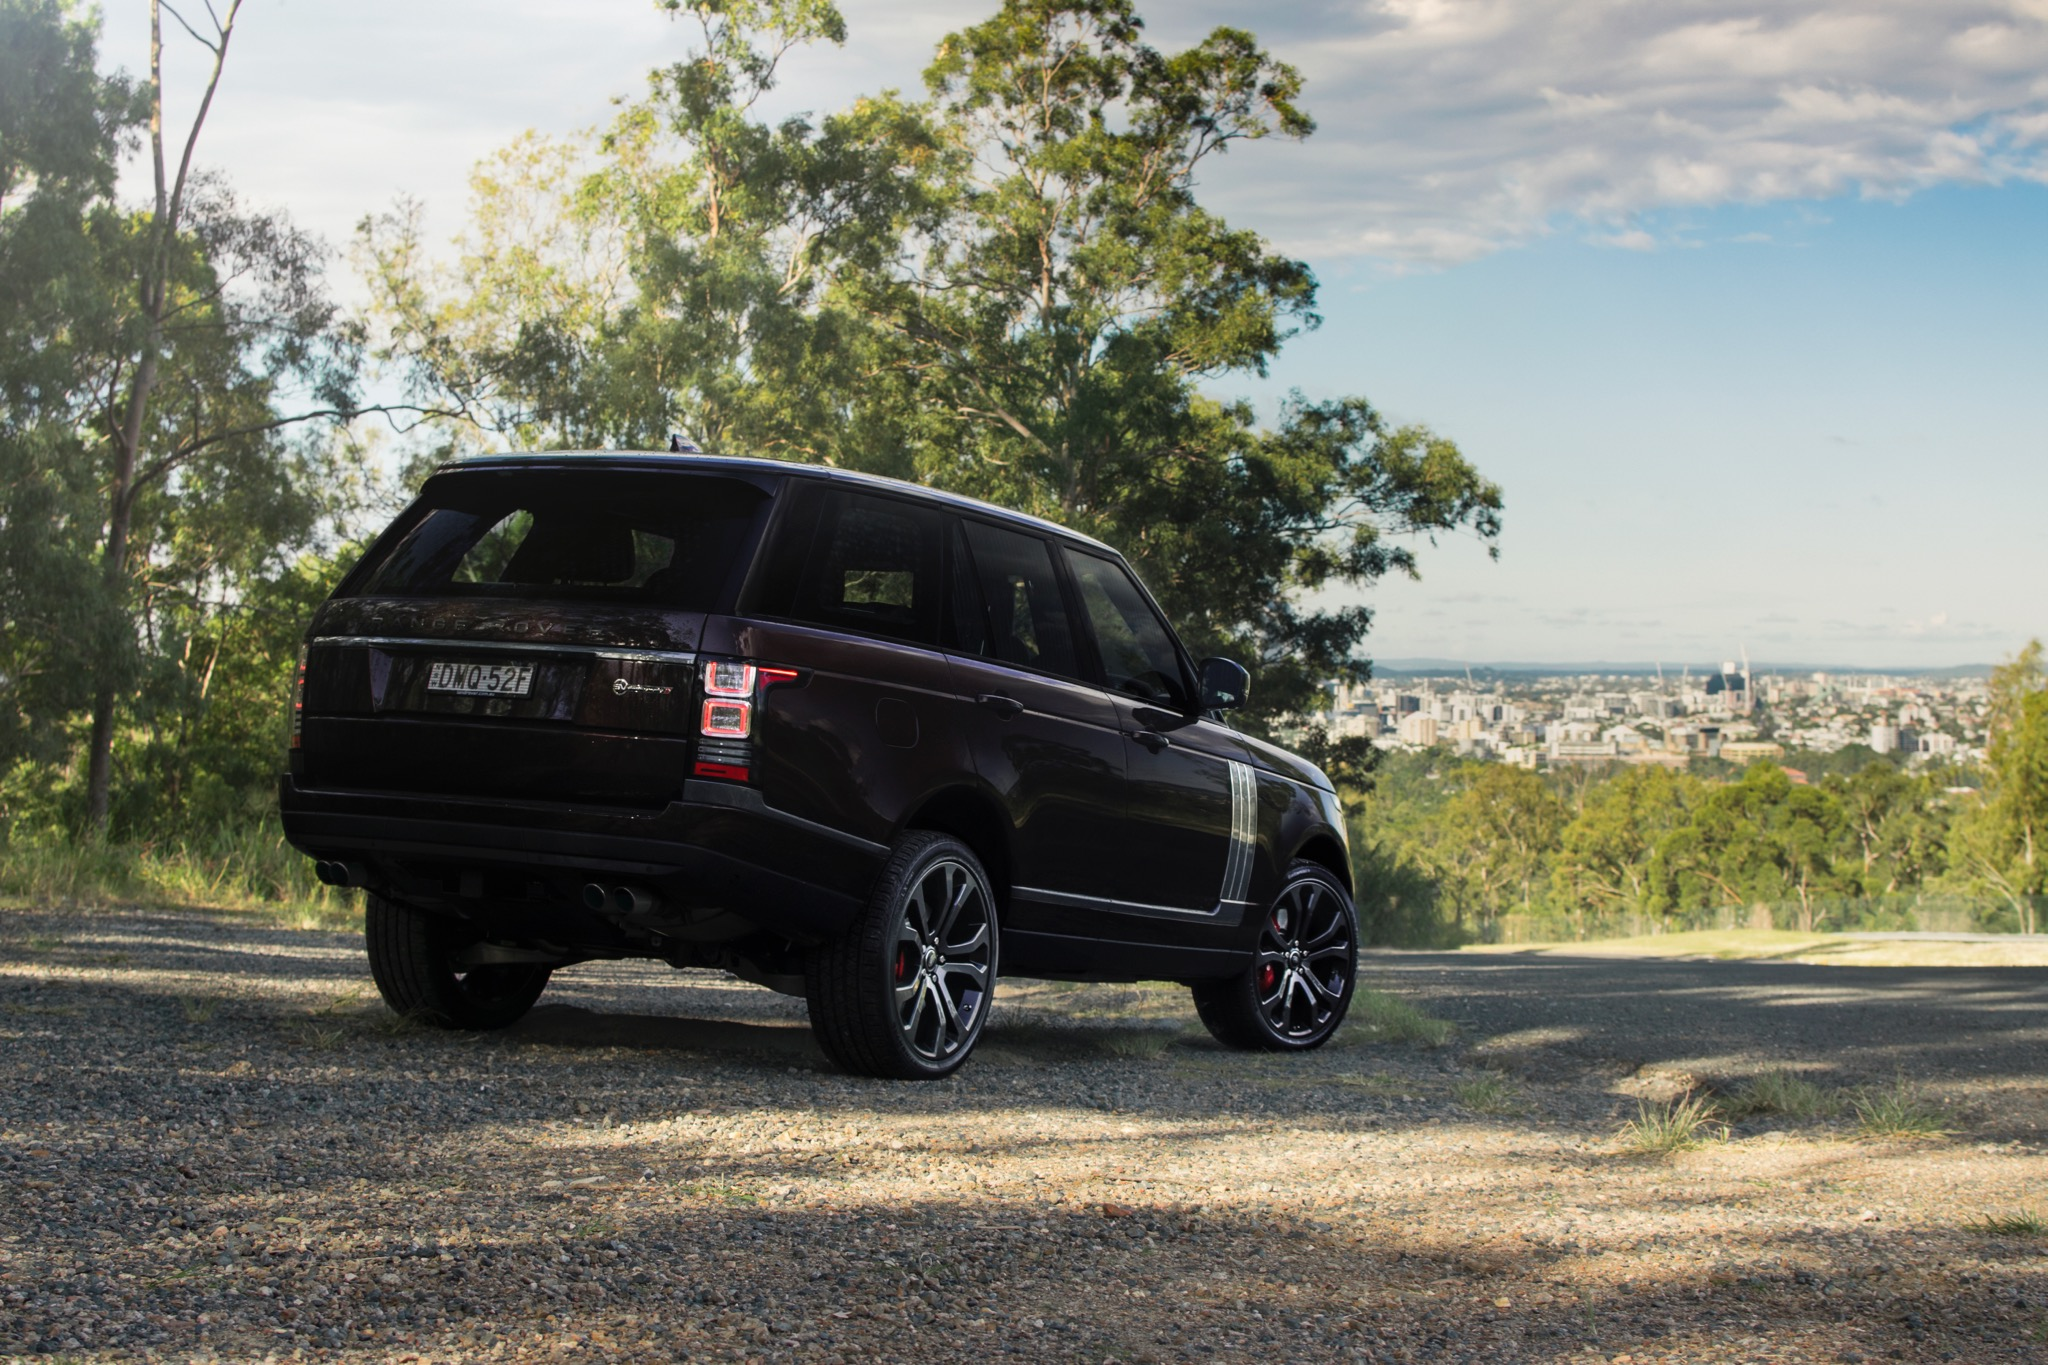 2017 range rover sv autobiography dynamic review photos caradvice. Black Bedroom Furniture Sets. Home Design Ideas